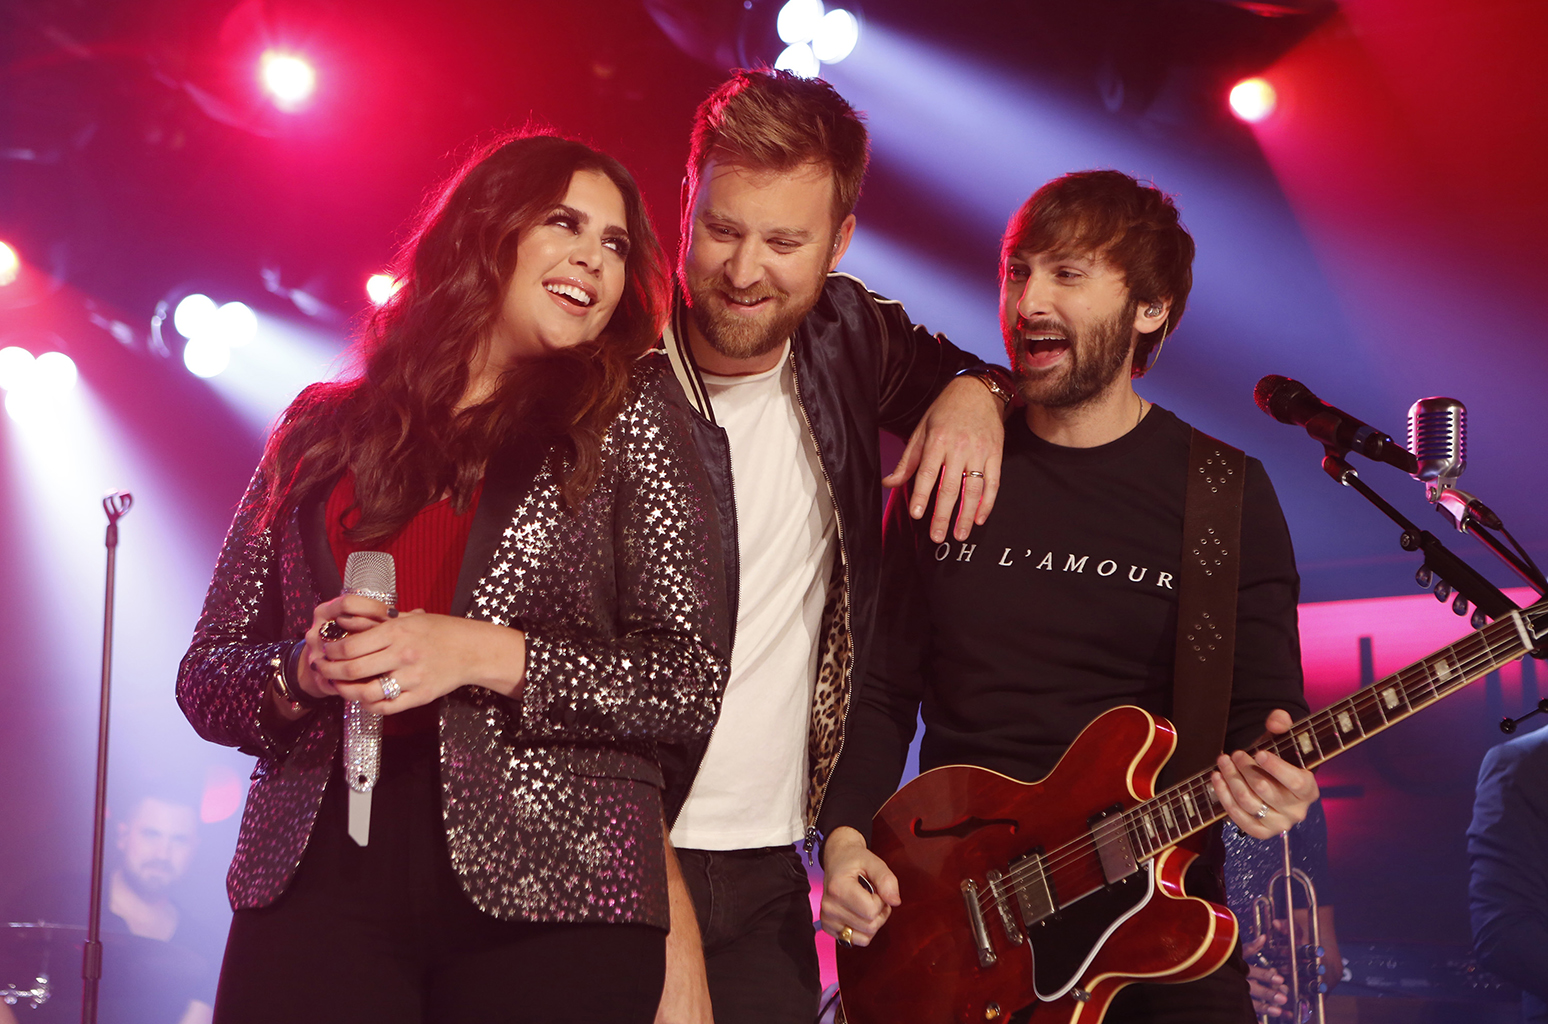 Lady Antebellum, Jake Owen & Maddie and Tae [CANCELLED] at Veterans United Home Loans Amphitheater